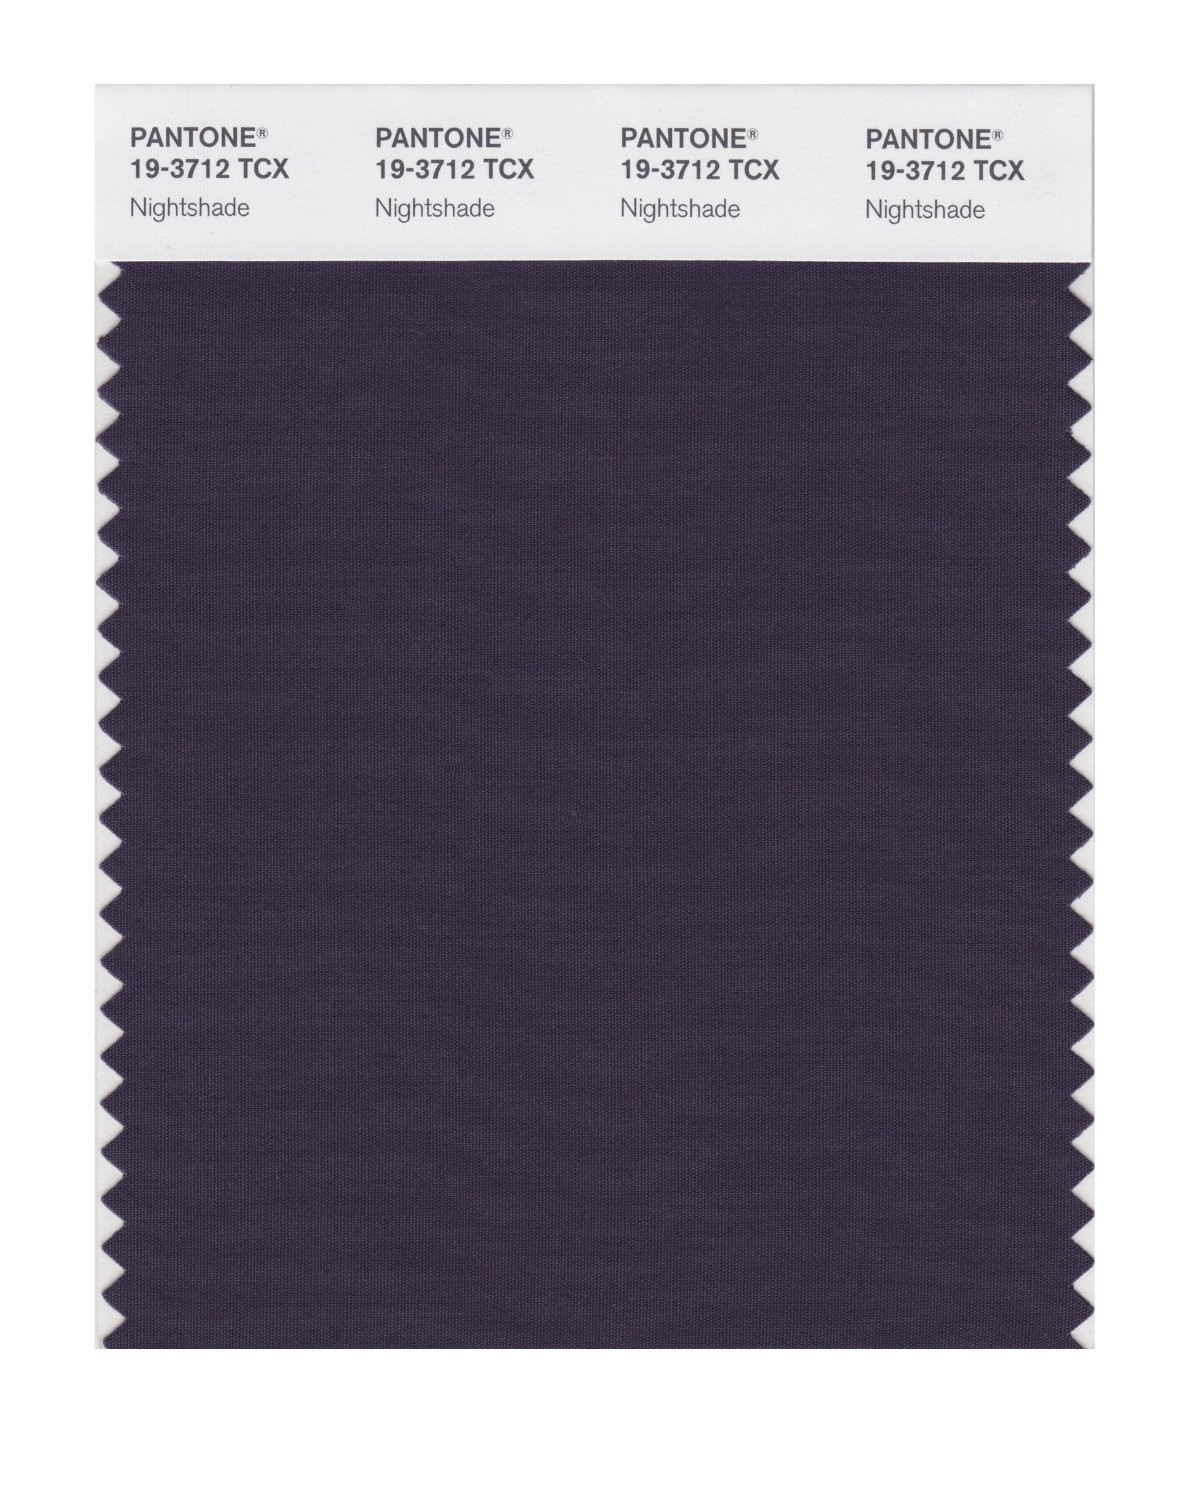 Pantone 19-3712 TCX Swatch Card Nightshade